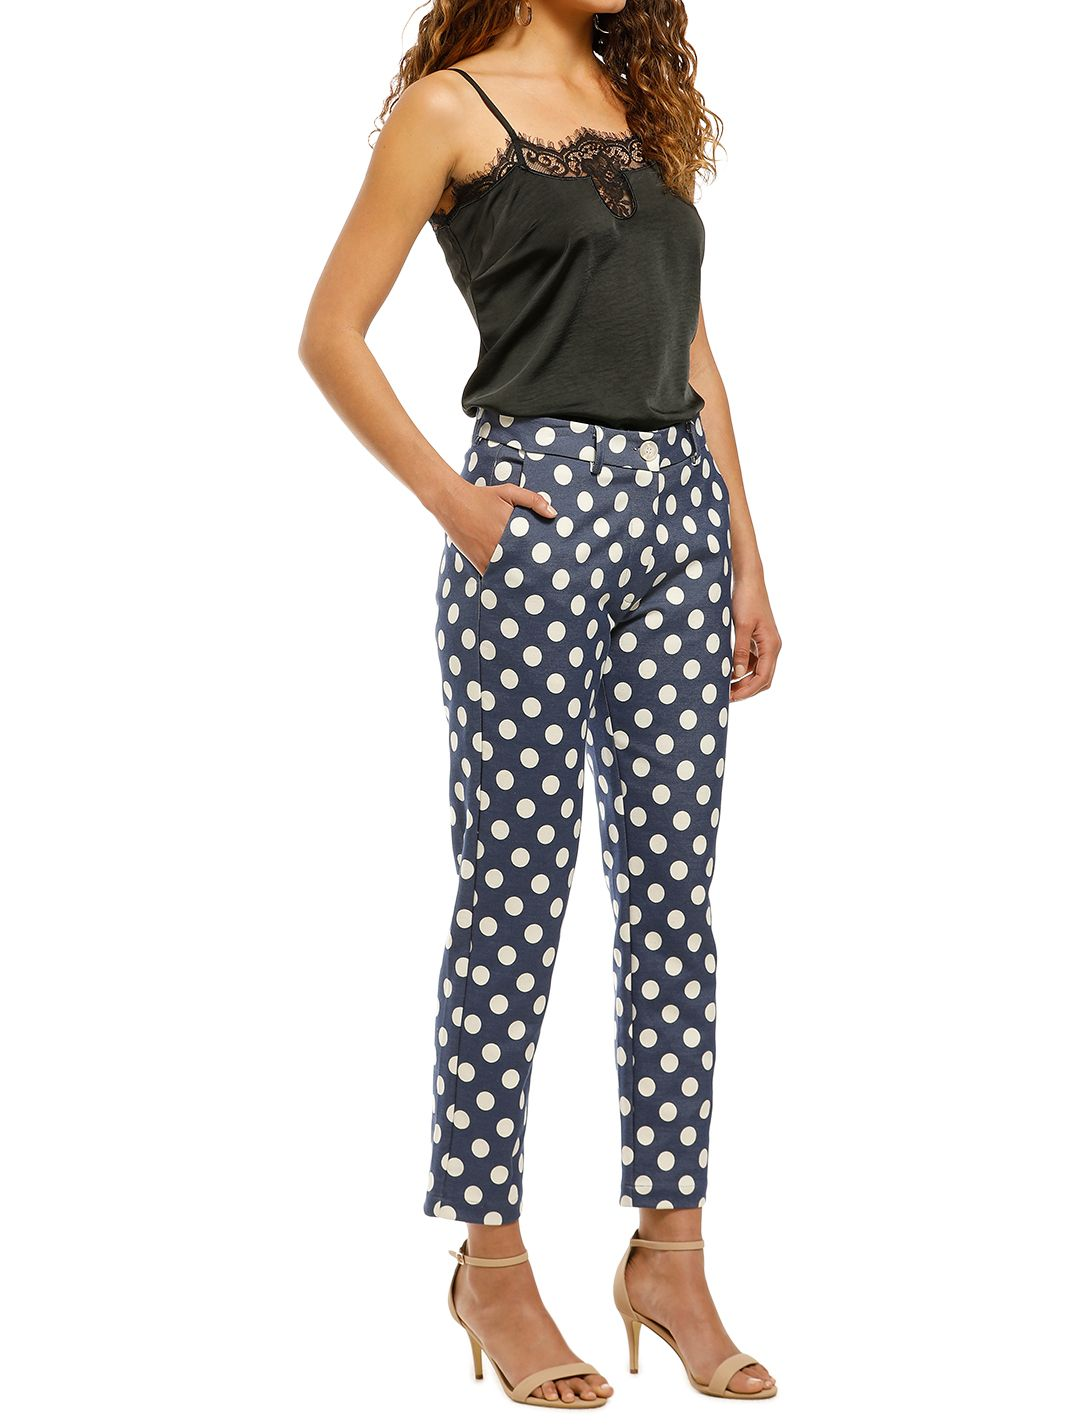 Cooper-by-Trelise-Cooper-I-Spot-You-Pant-Blue-Cream-Spot-Side